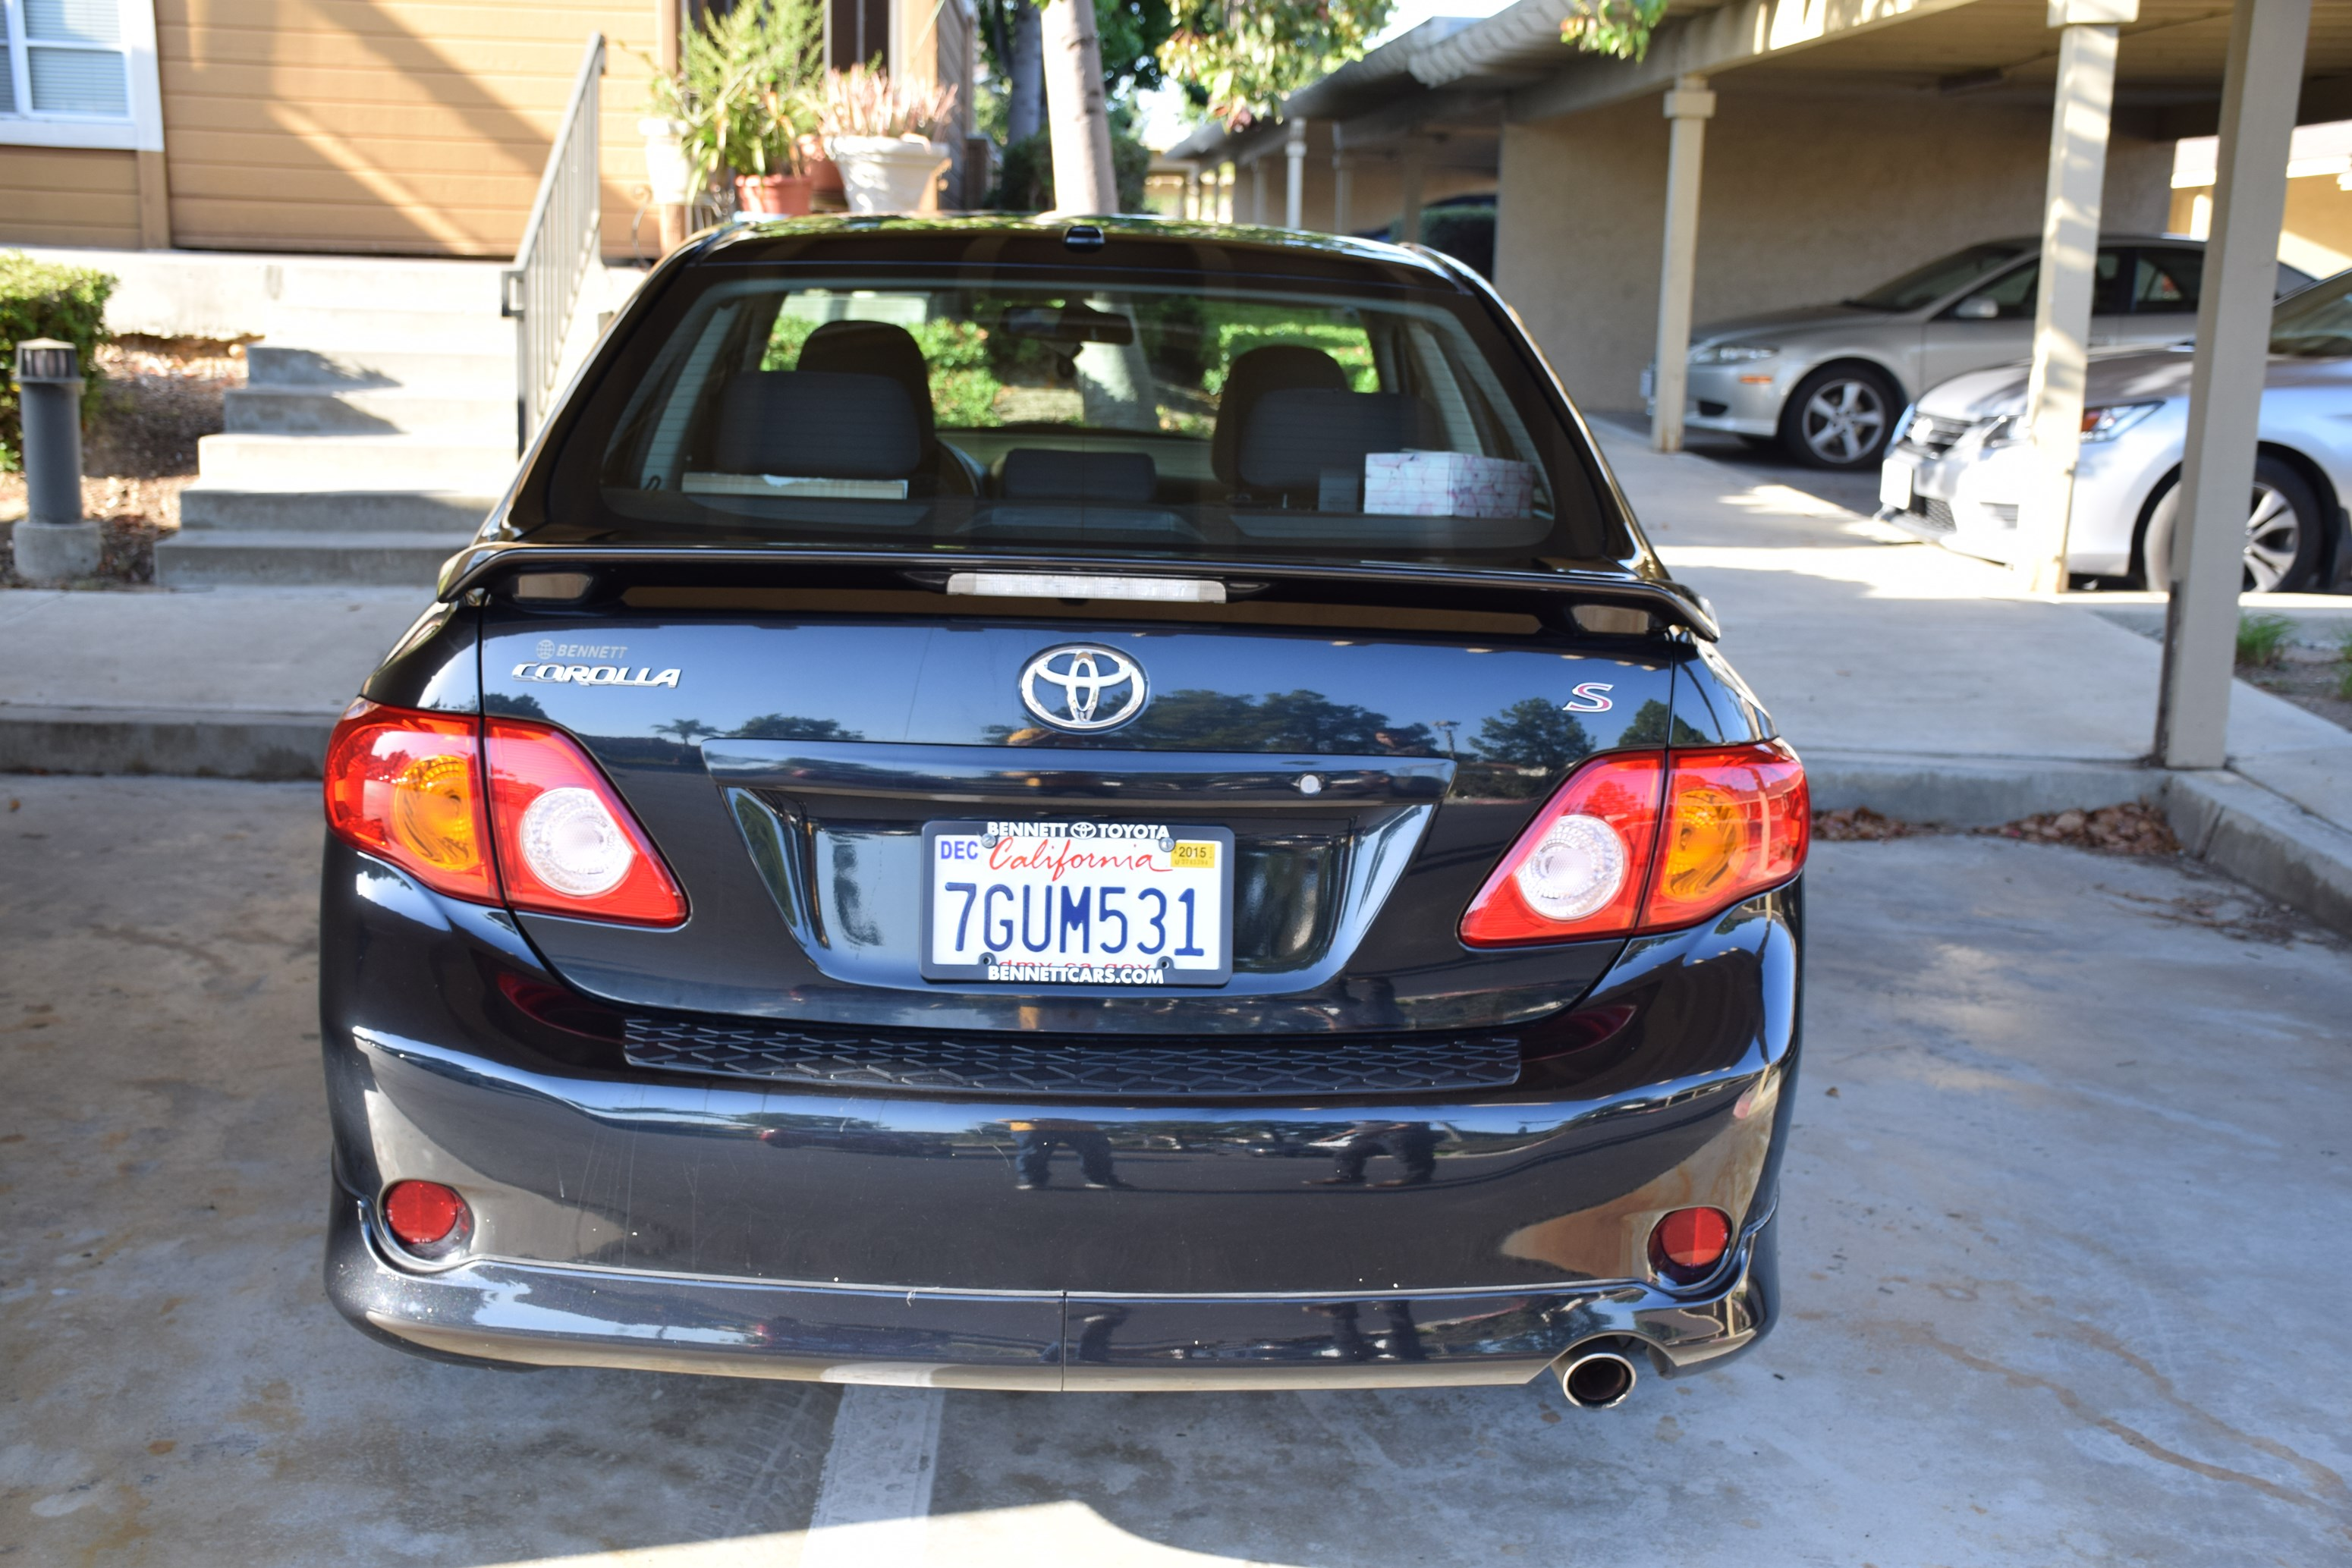 For Sale: Used Toyota Corolla 2009 S (2nd Owner, Clean Title ...